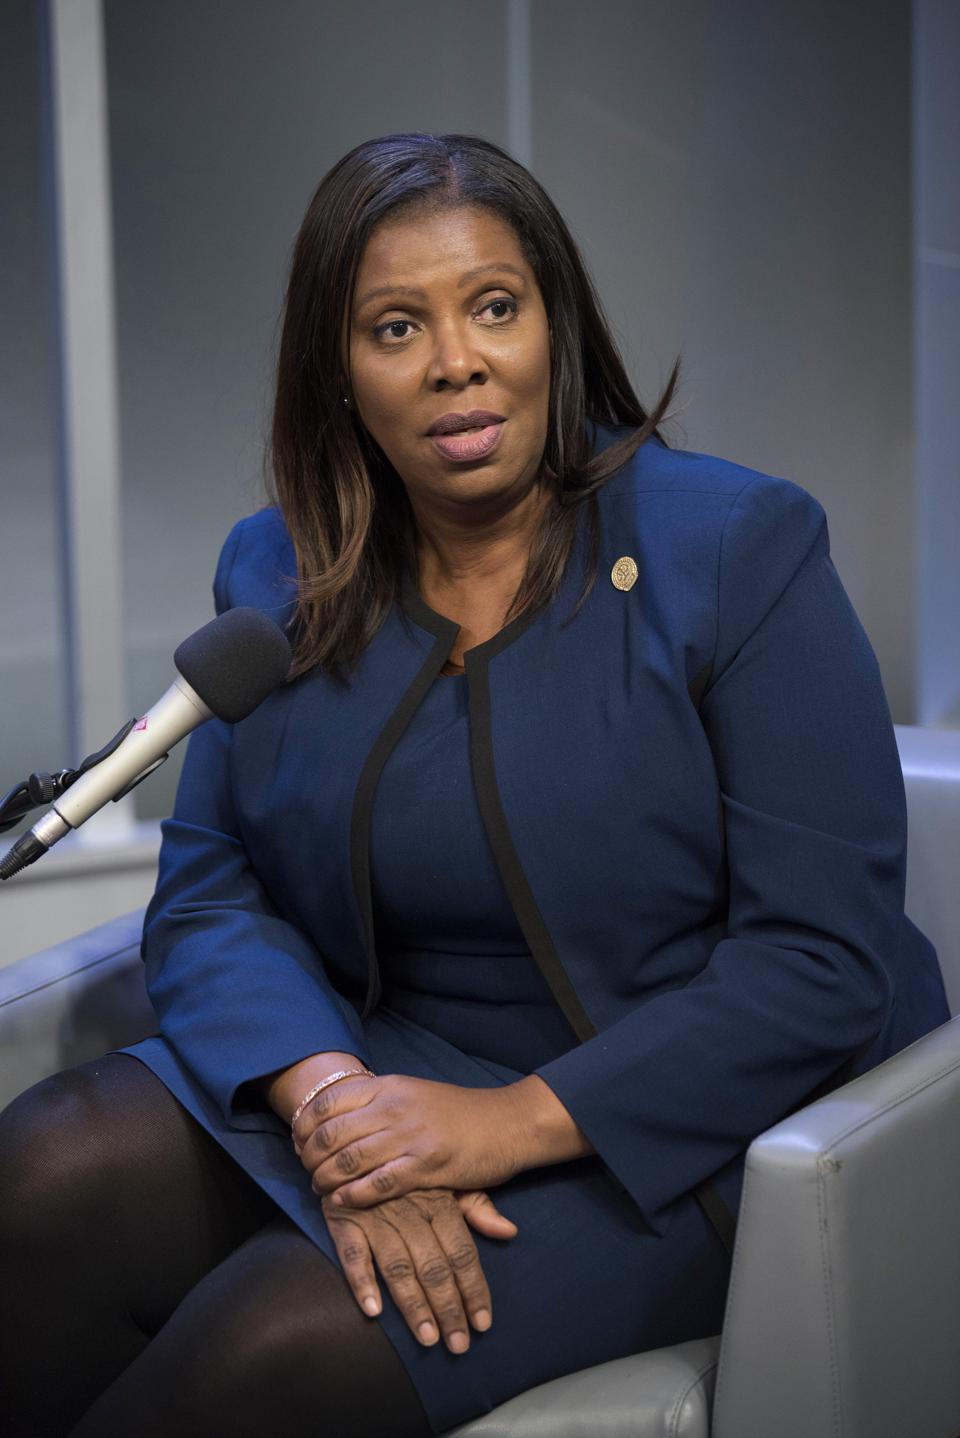 Attorney General Letitia James Interview With L. Joy Williams On SiriusXM Urban View's Sunday Civics